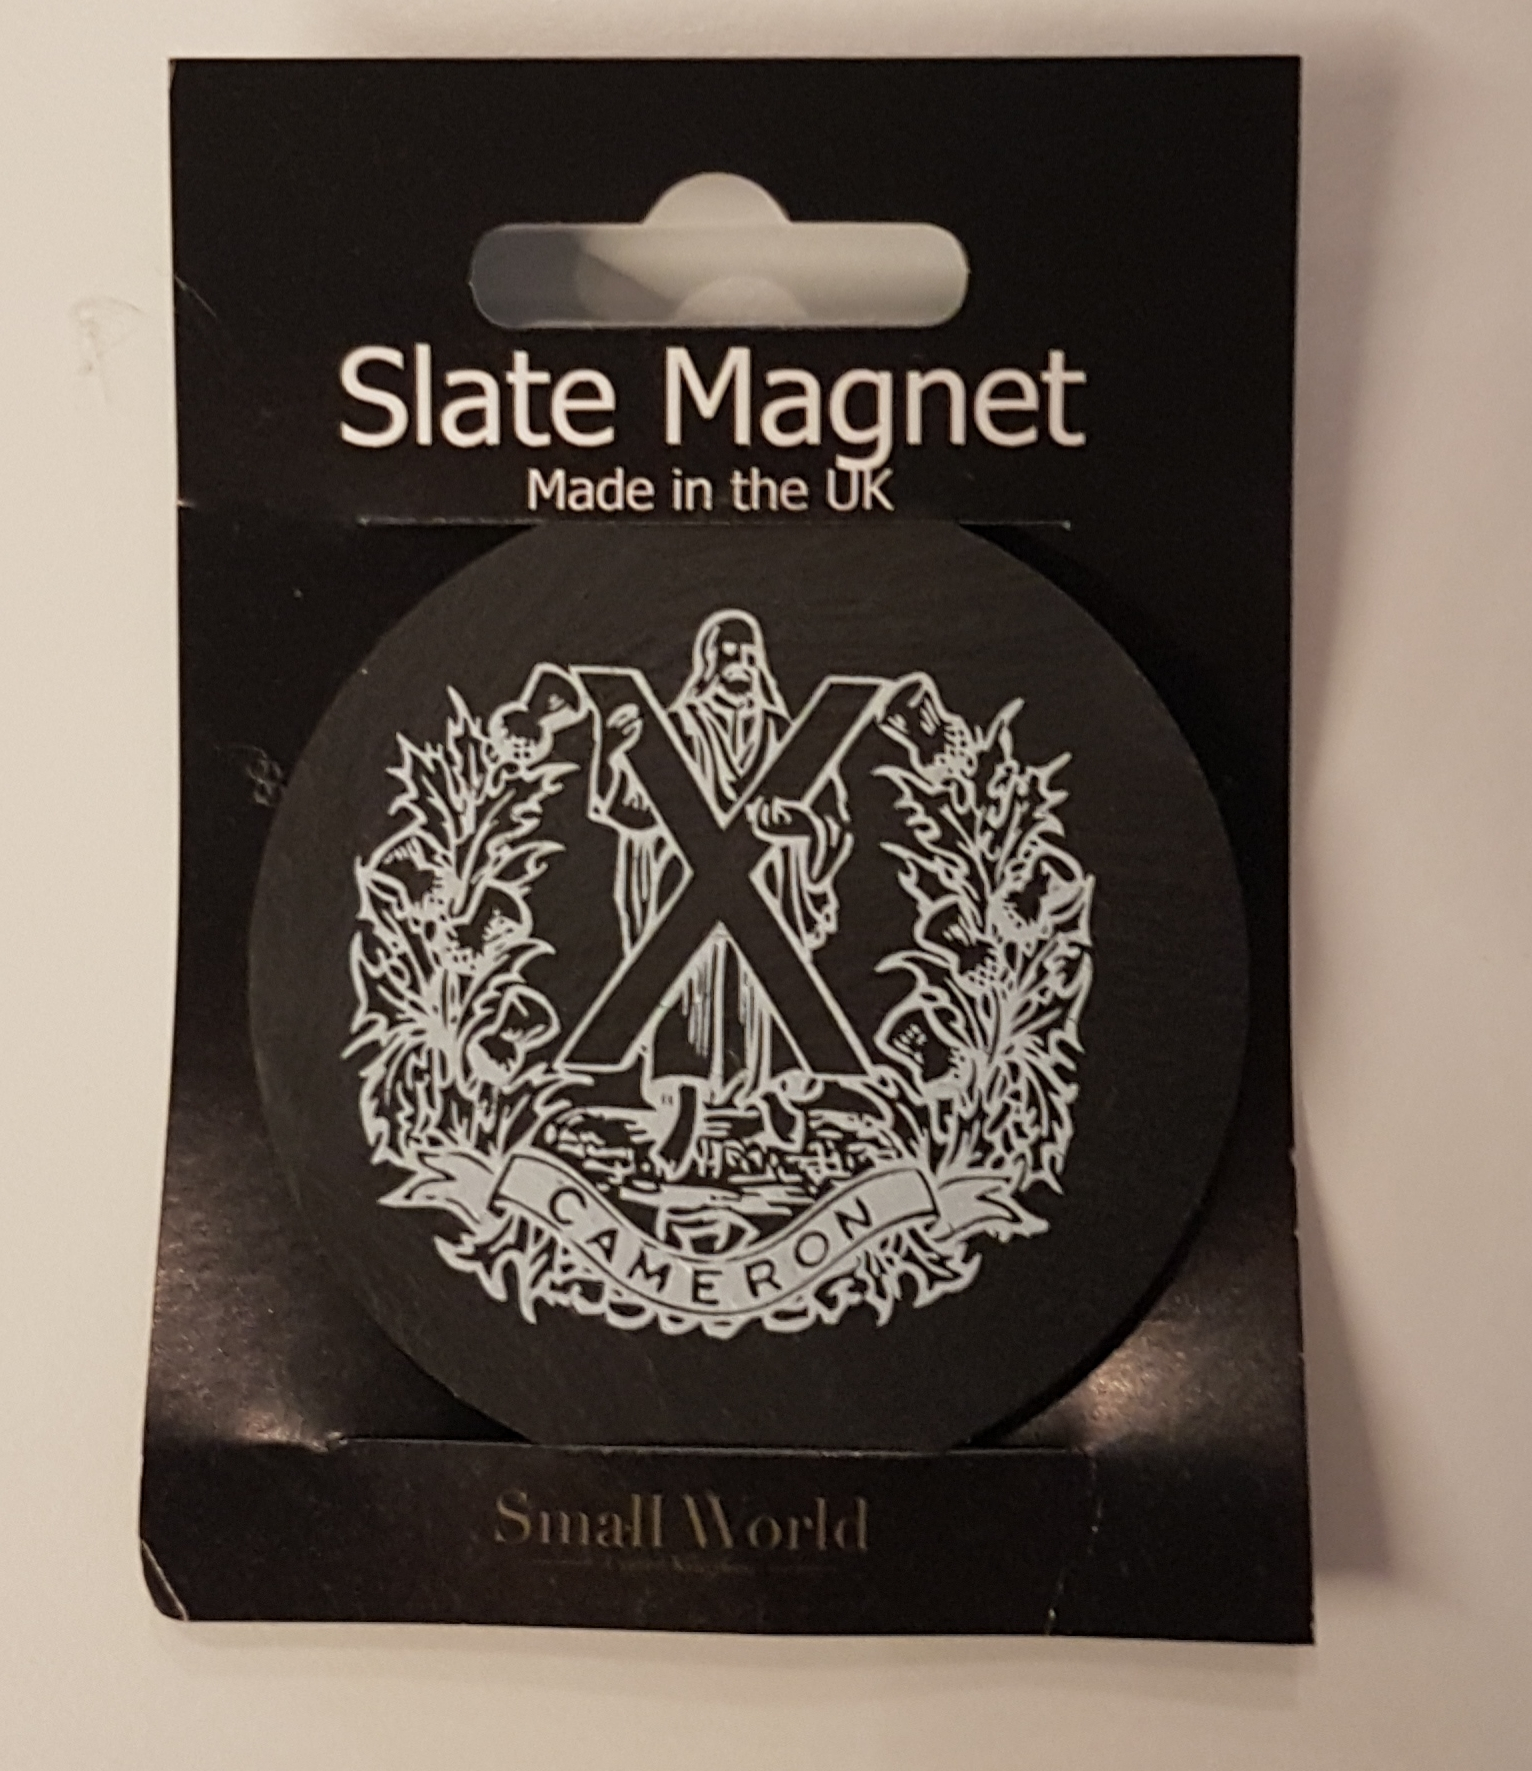 Slate Magnet - The Queen's Own Cameron Highlanders